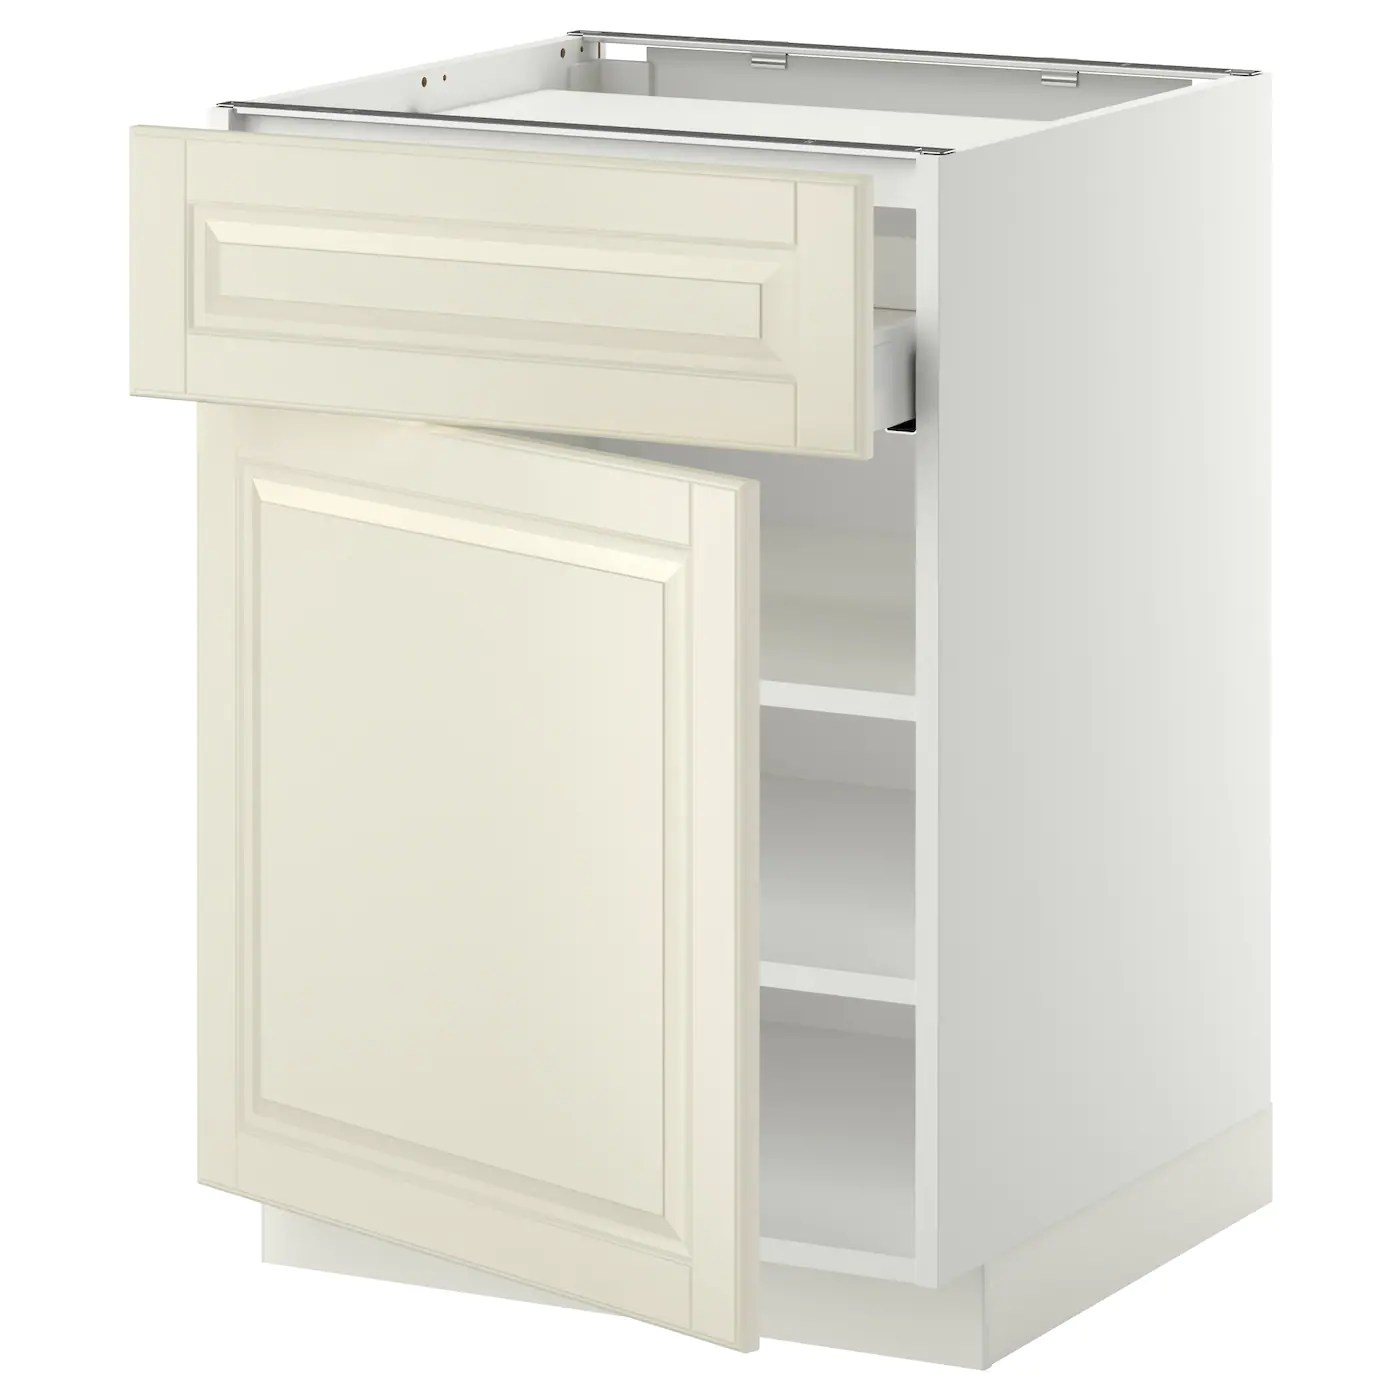 Ikea Metod Oberschrank 60x80 Ikea Off White Off White Ikea Just Announced A Collaboration On